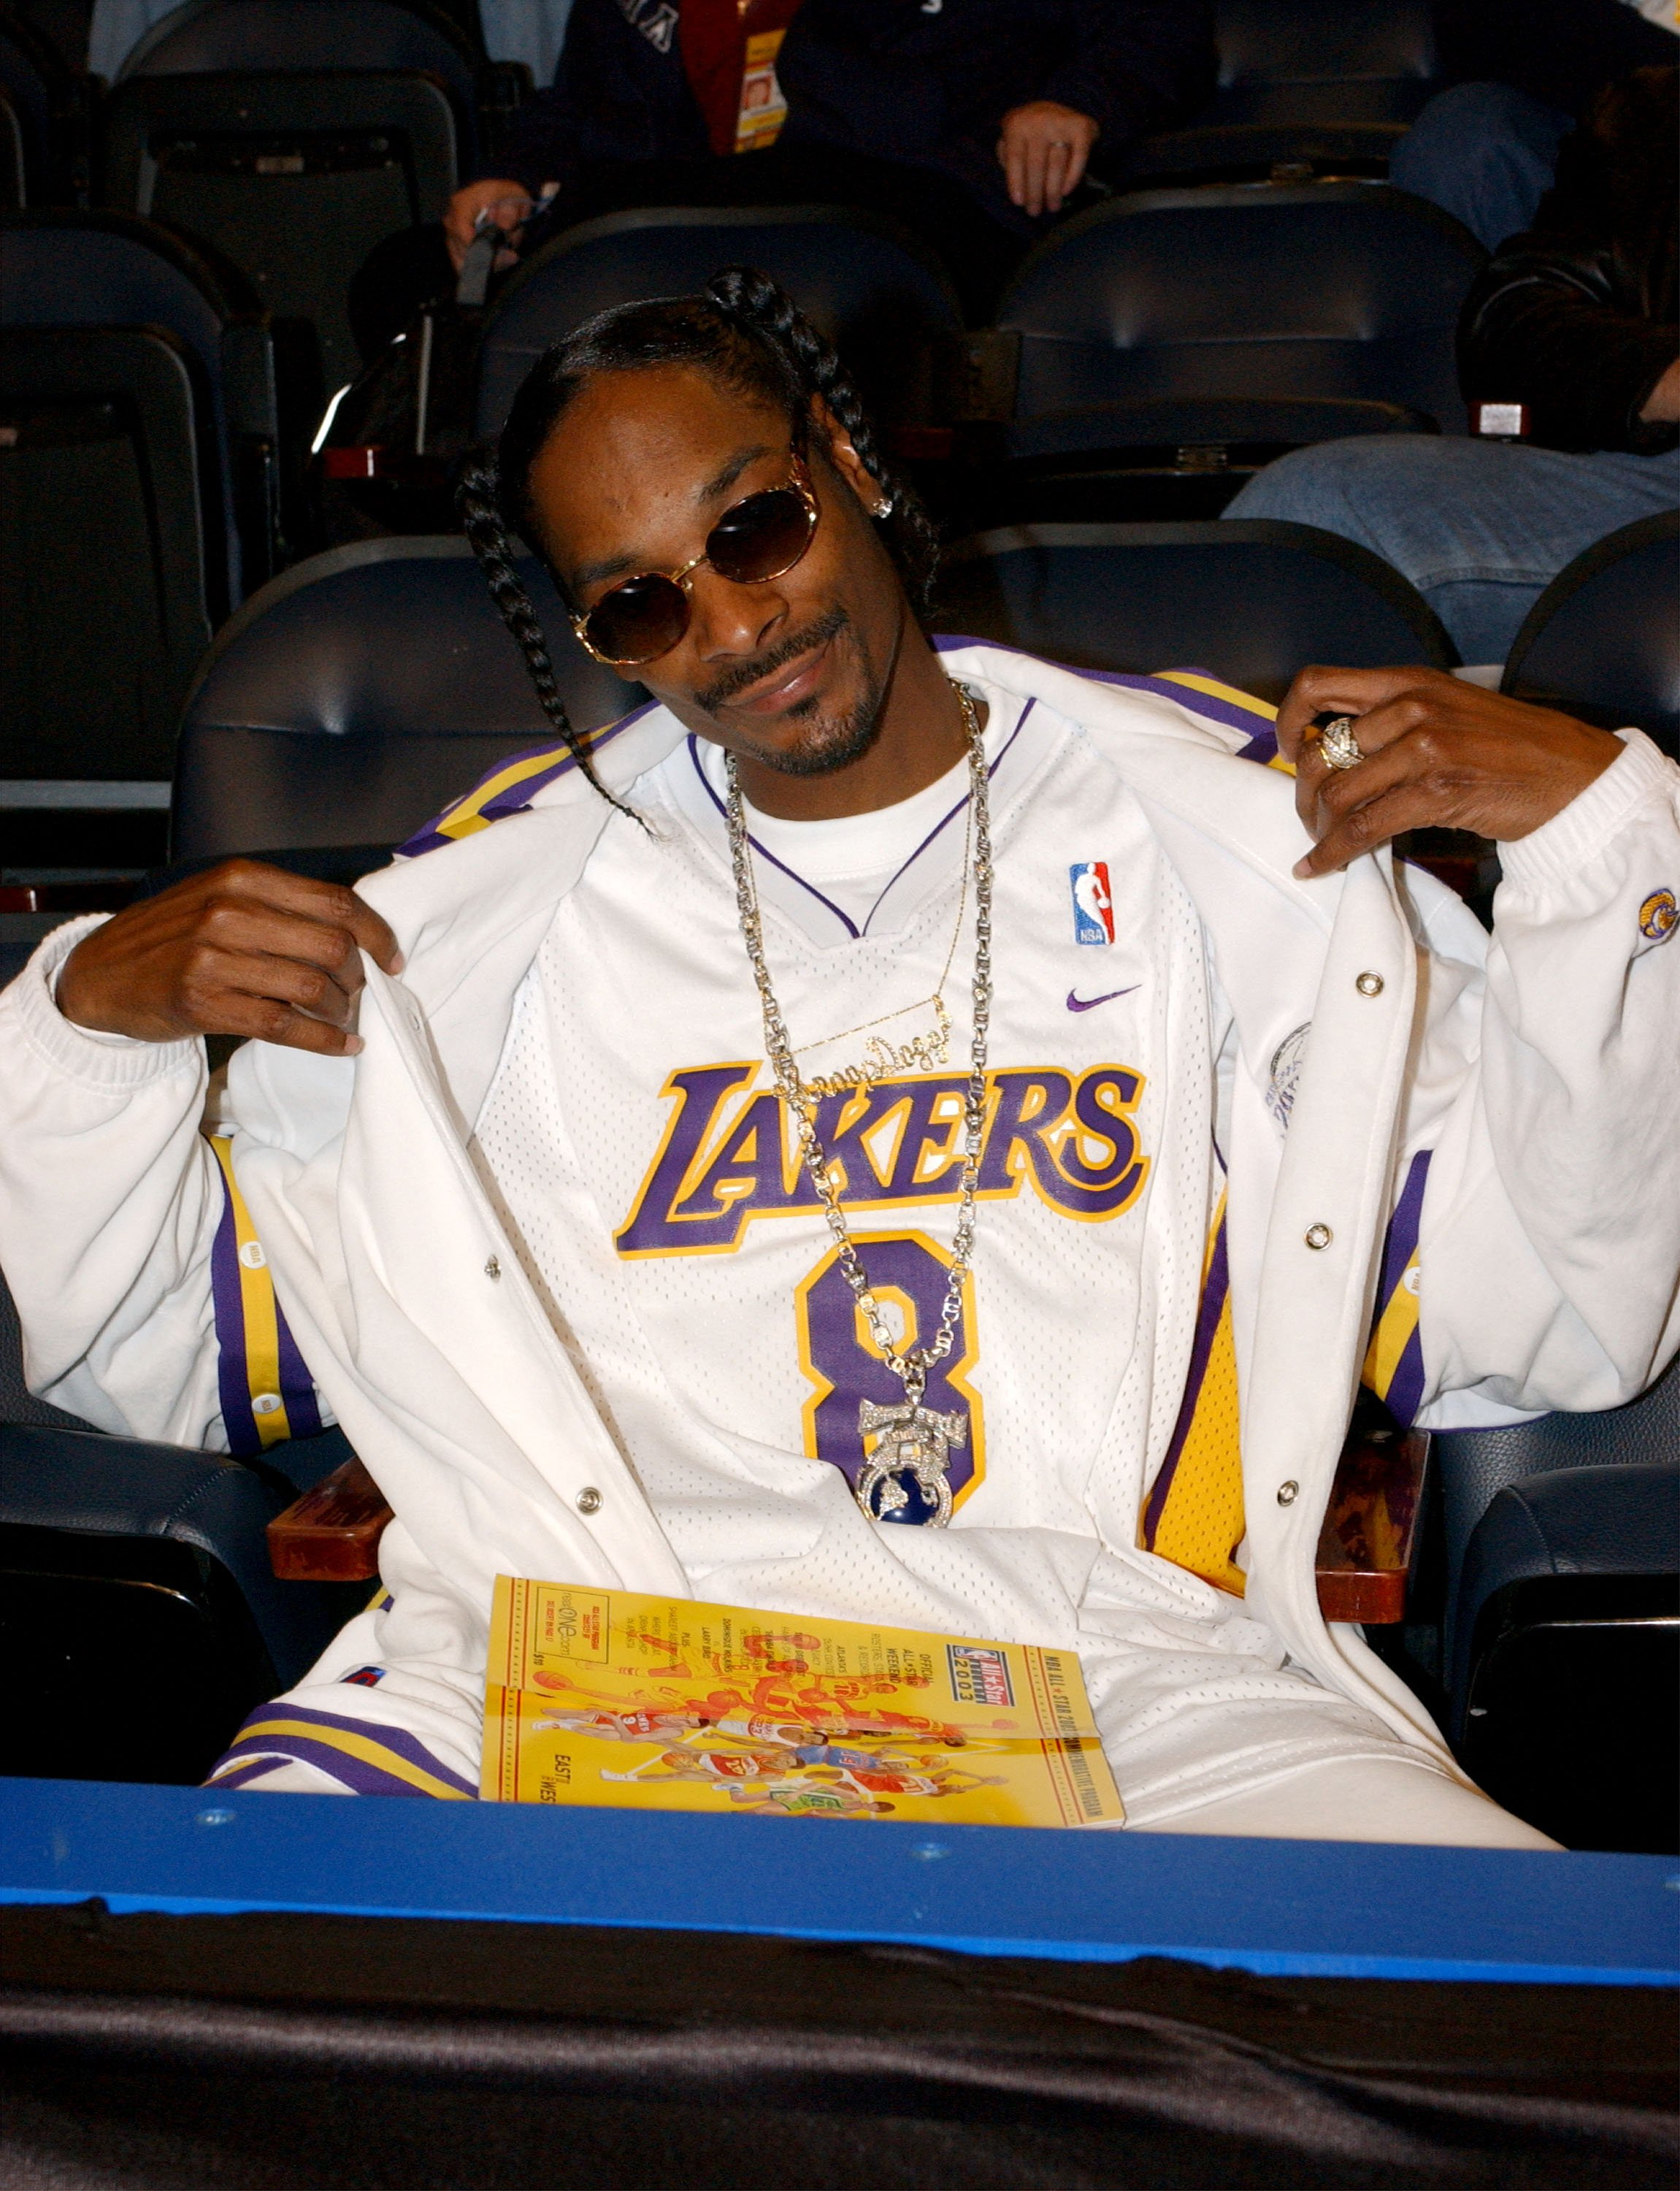 Rapper Snoop Dogg waiting for the beginning of the 2003 NBA All-Star game at the Phillips Arena on February 9, 2003 in Atlanta, Georgia. | Photo: Getty Images